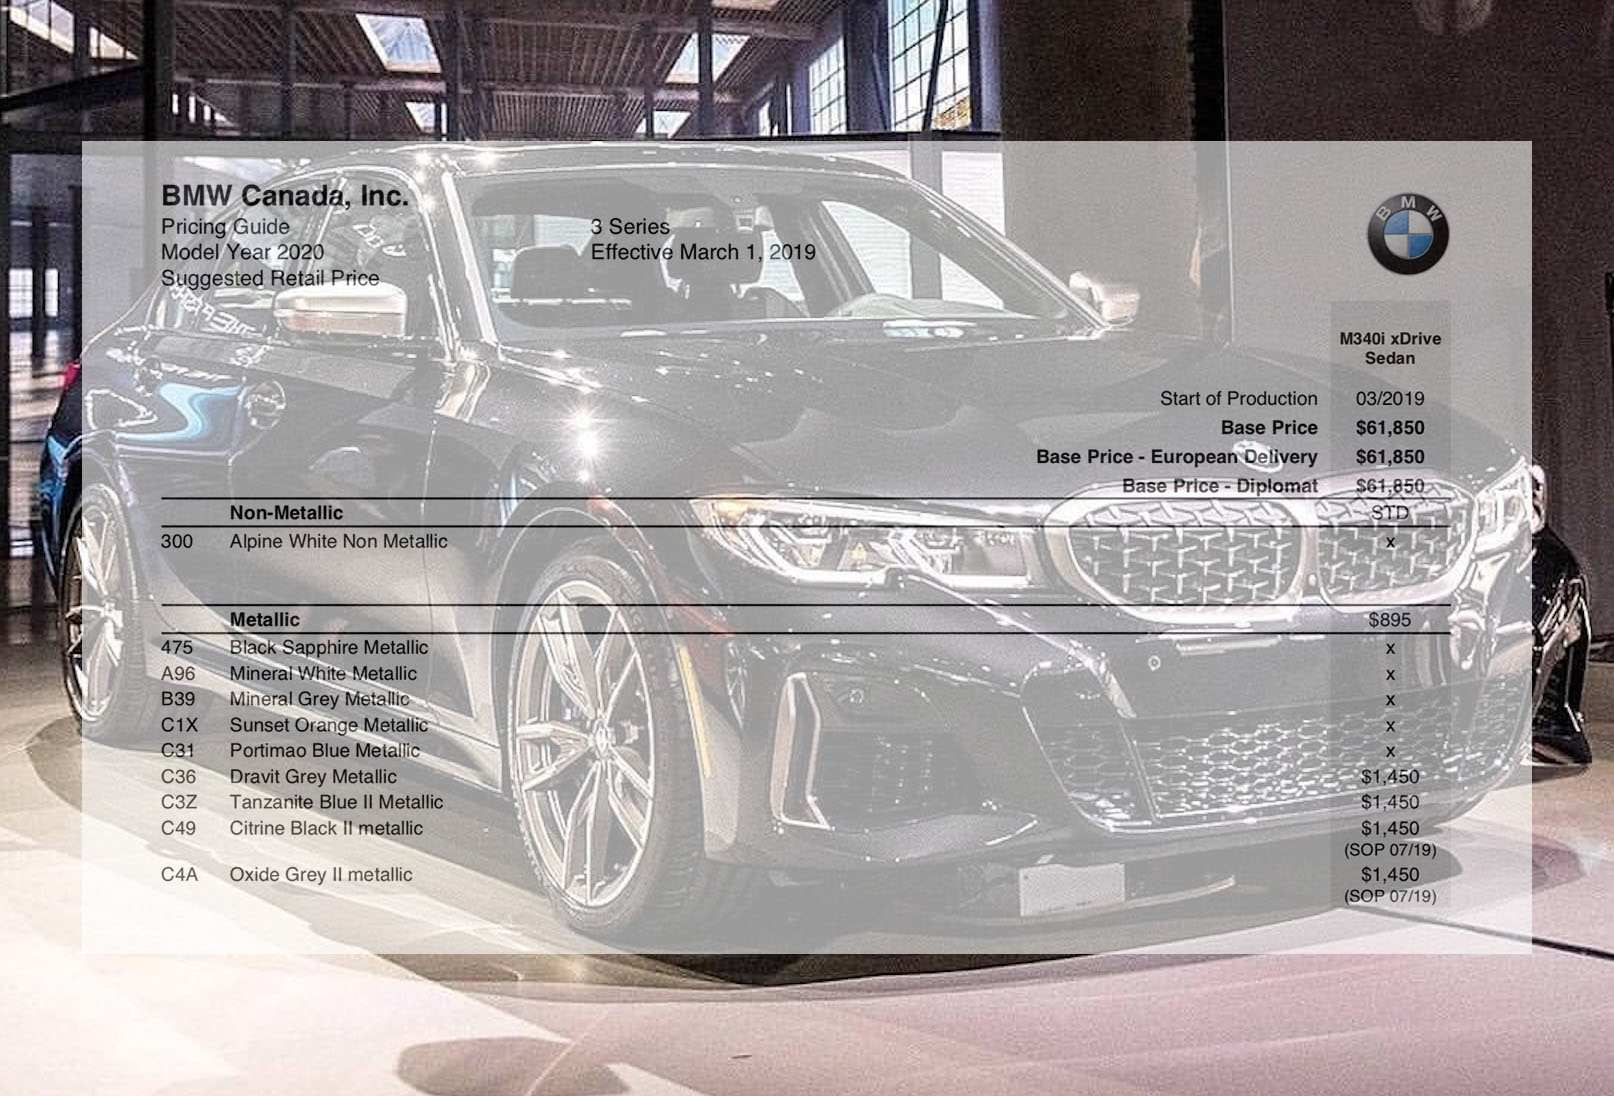 49 Gallery of 2020 Bmw Ordering Guide Configurations with 2020 Bmw Ordering Guide